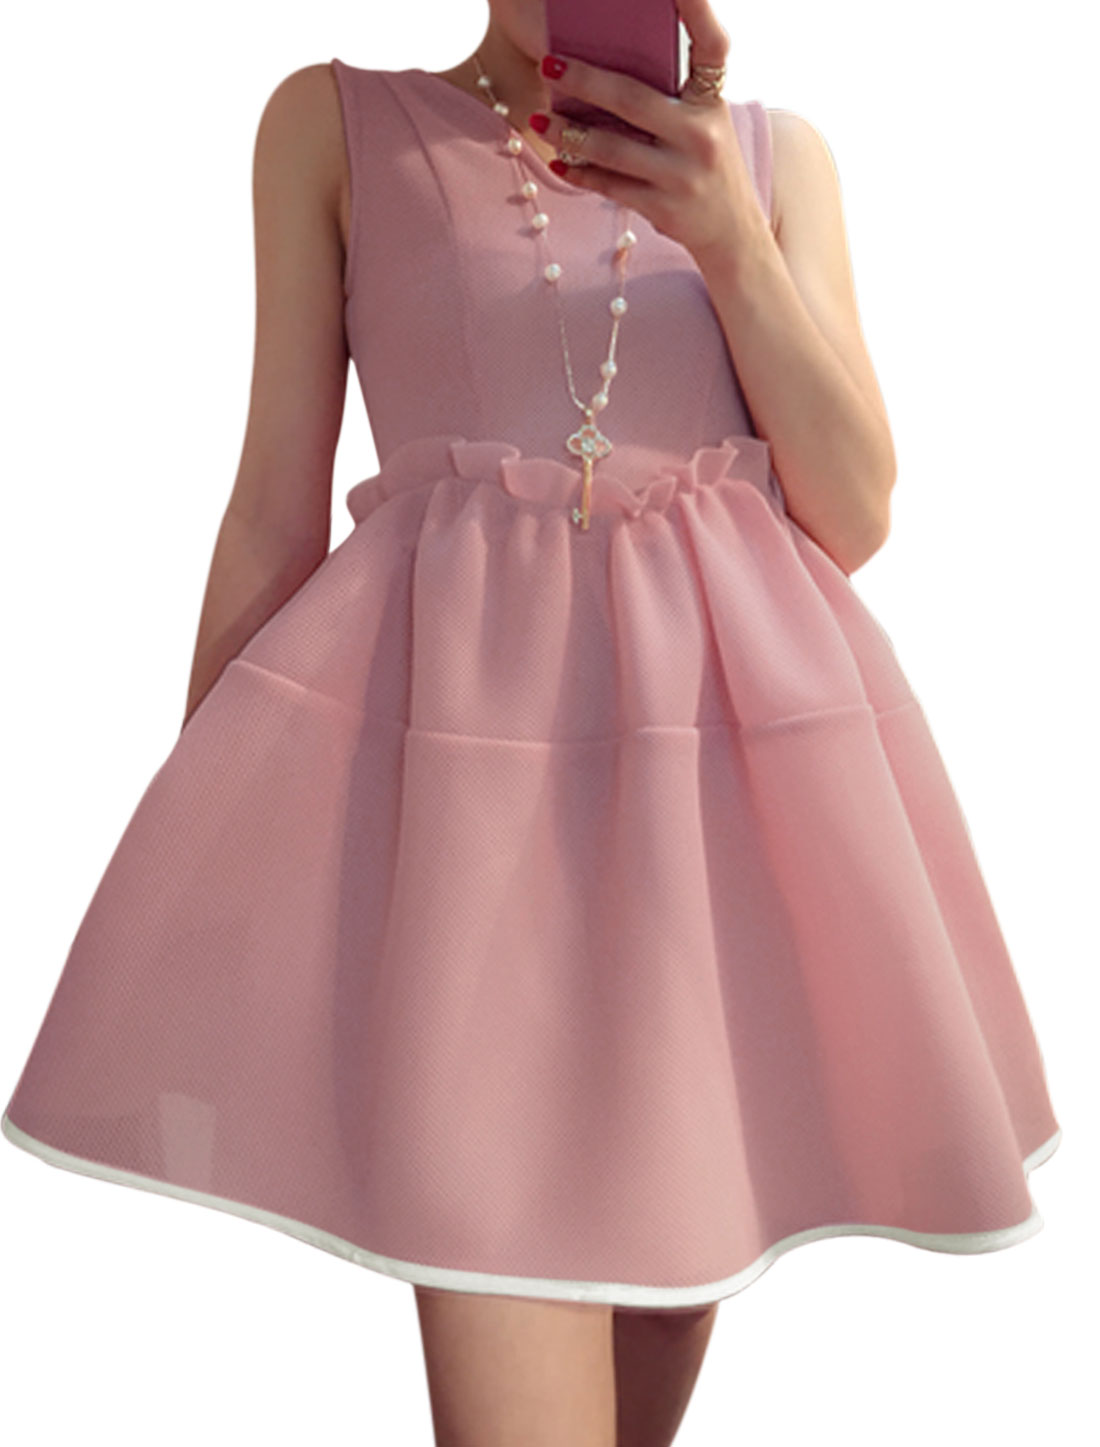 Women V Neck Sleeveless Unlined Skater Dress Pink XS